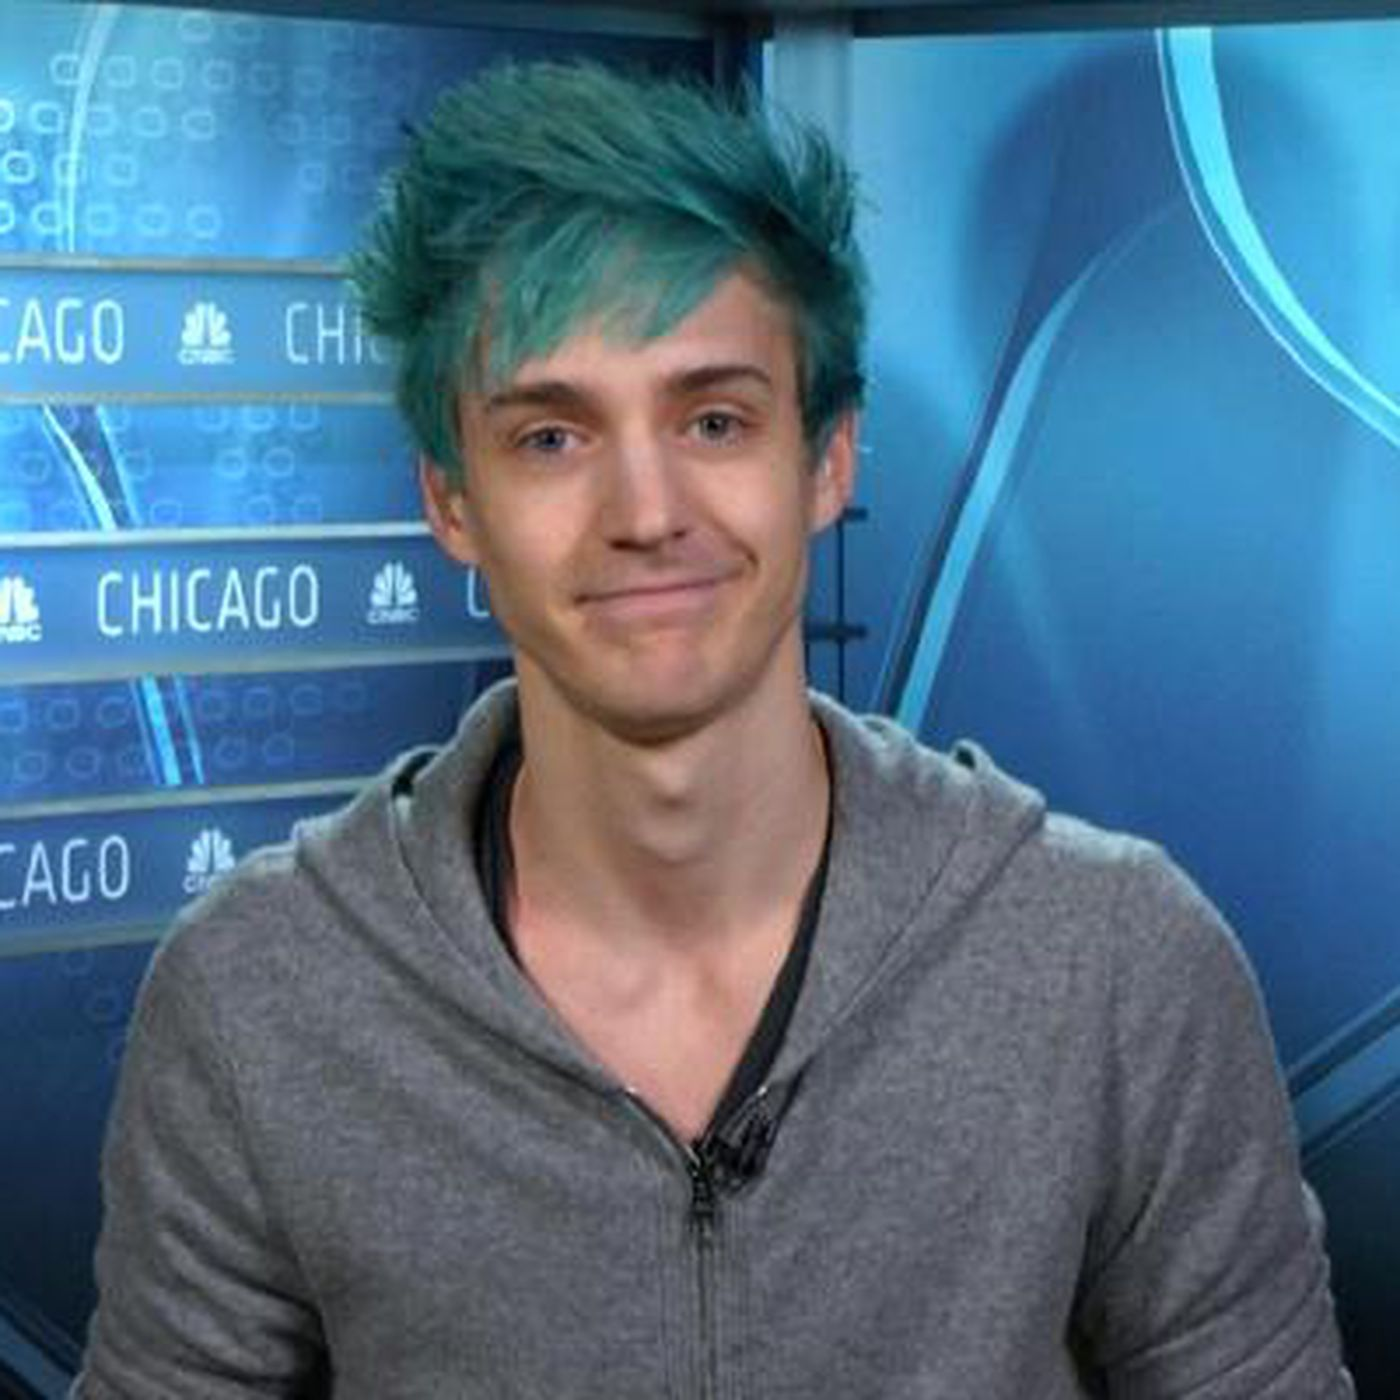 Fortnite S Ninja Gained Almost 4 Million Youtube Subscribers In One Month Polygon